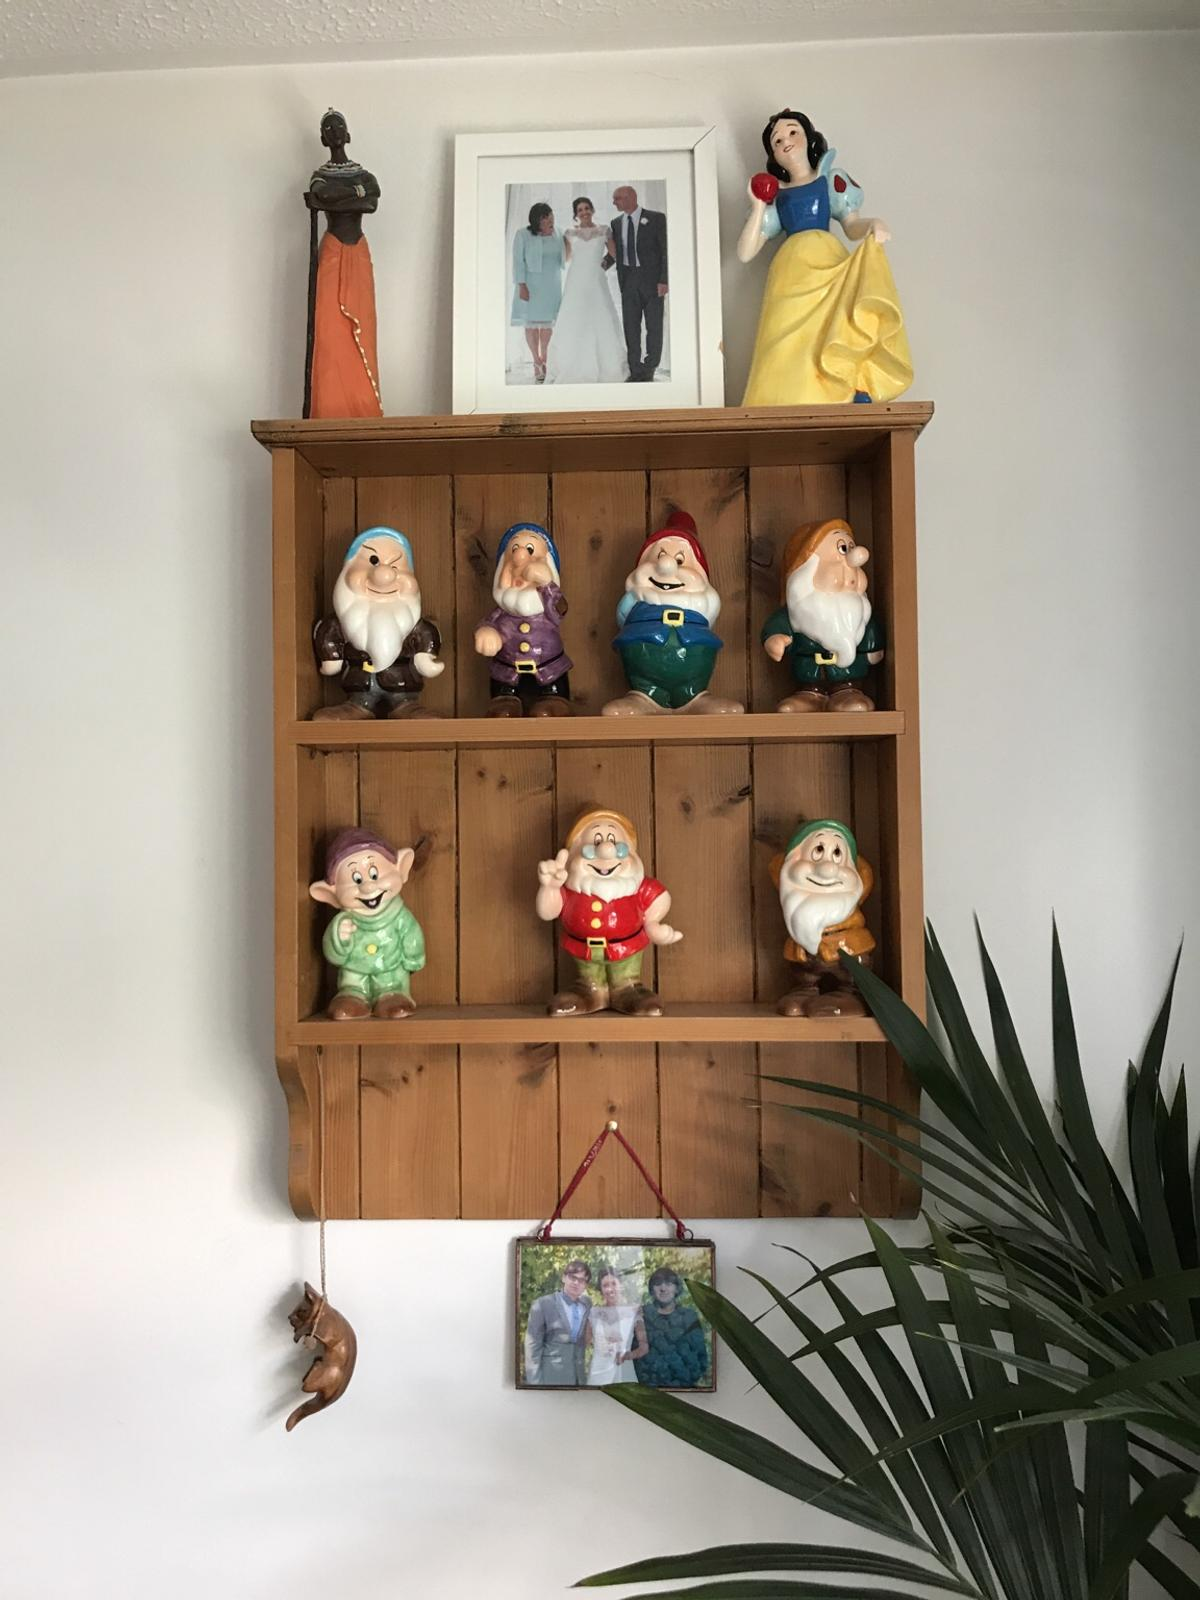 Dresser Style Solid Wood Wall Shelves Display